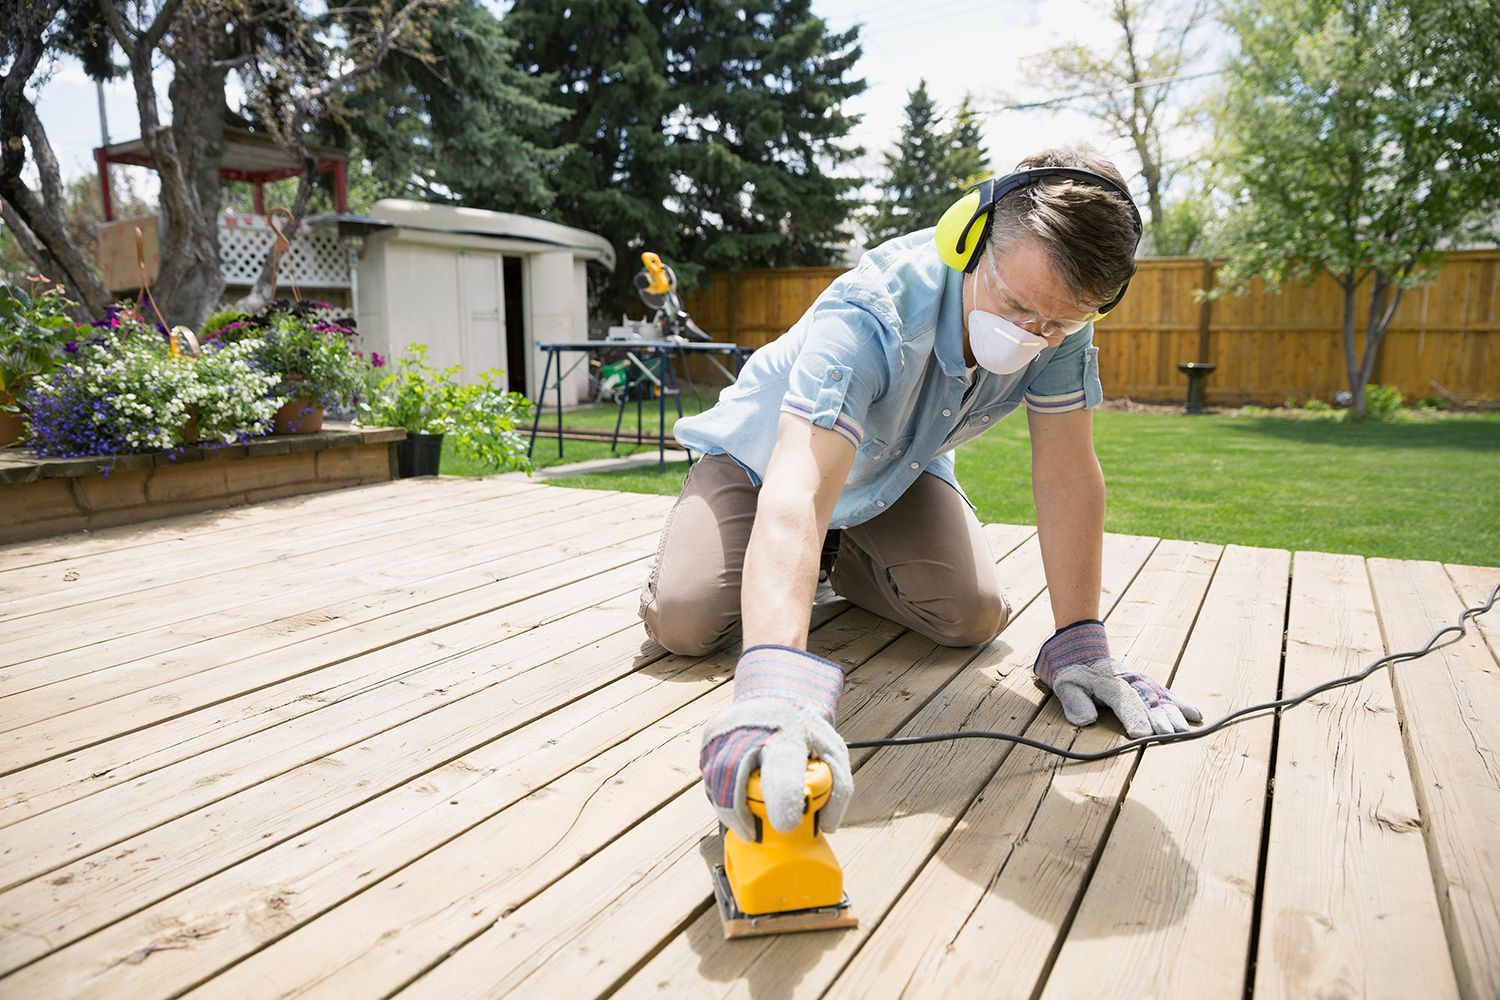 hardwood floor refinishing ann arbor of tips for properly sanding a wood deck after washing for gettyimages 500817135 5a6519907bb283003730b5bb